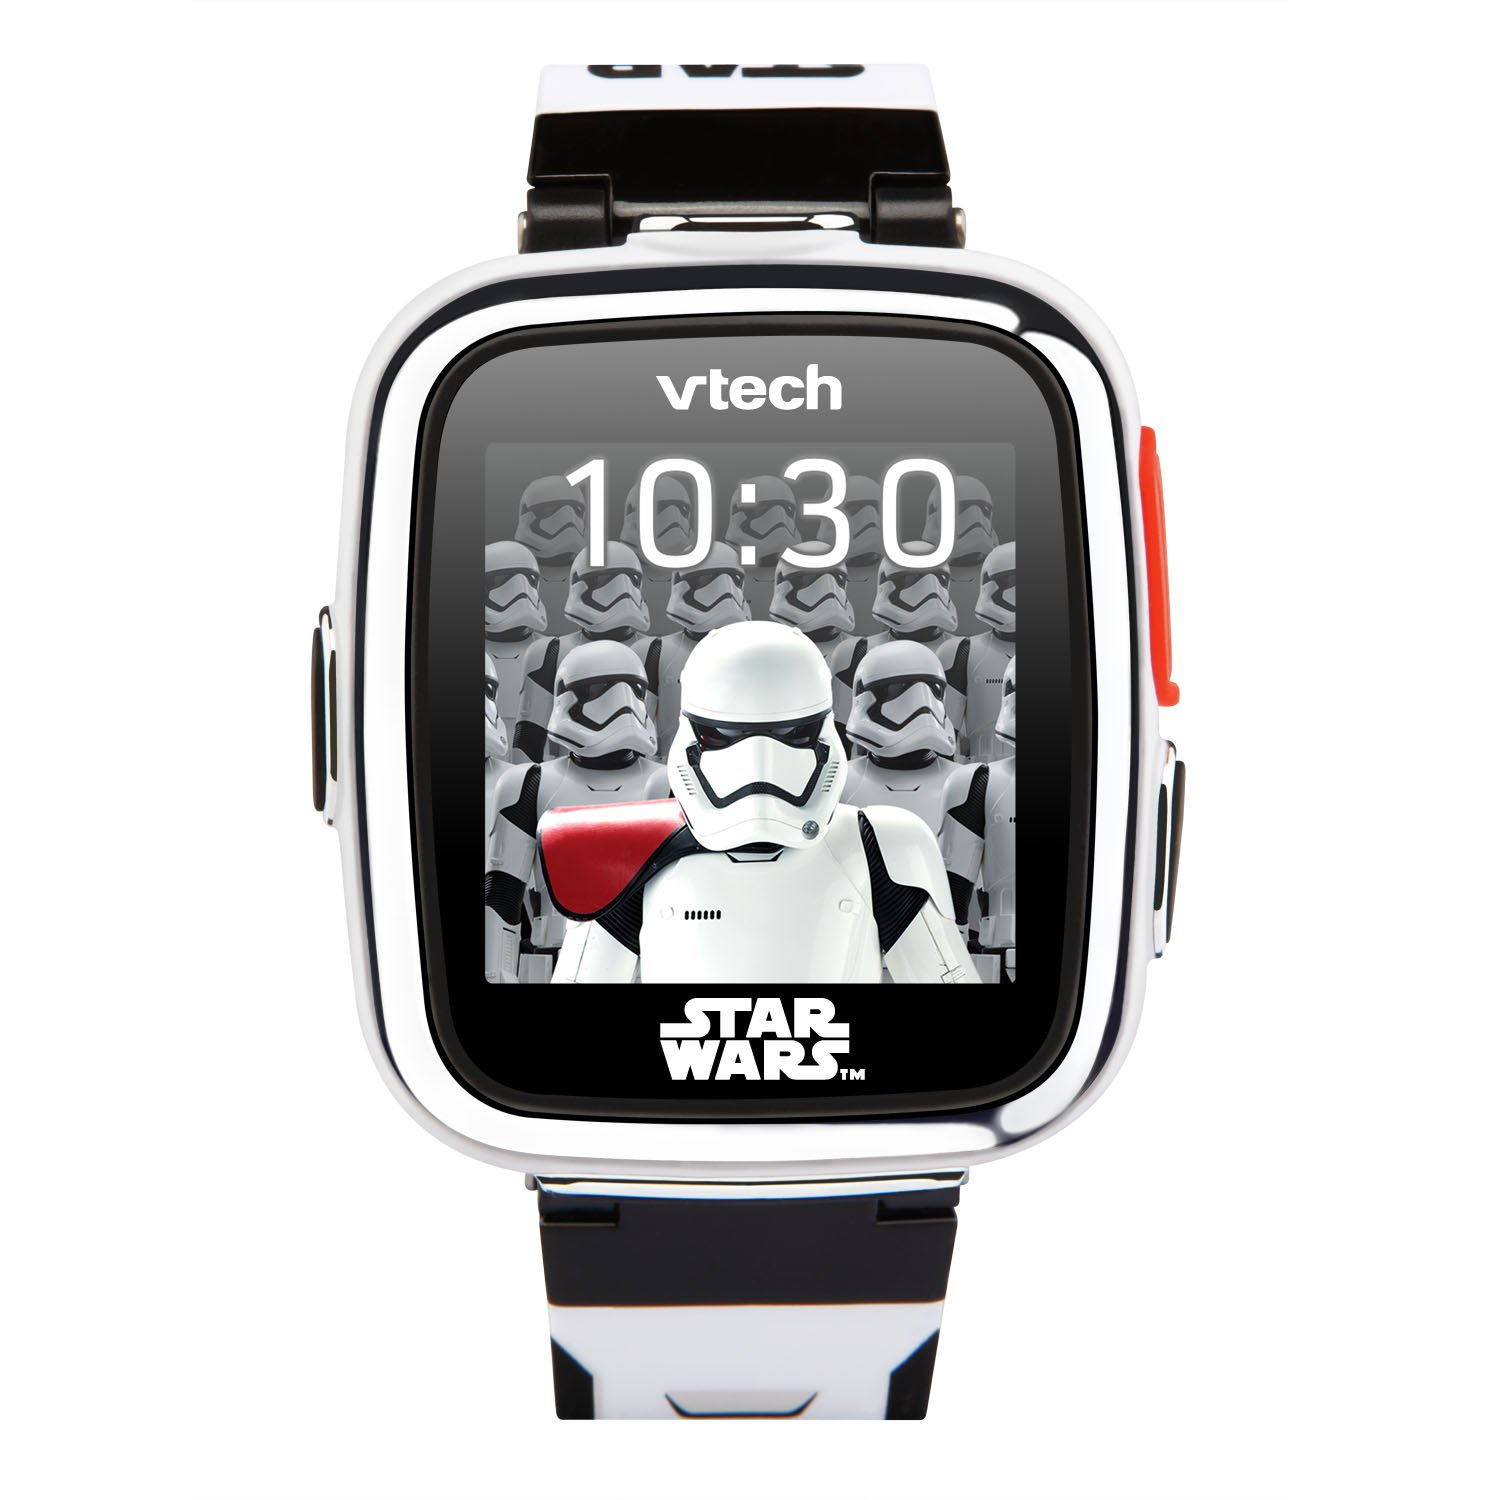 VTech Star Wars First Order Stormtrooper Smartwatch with Camera Amazon Exclusive, White by VTech (Image #3)